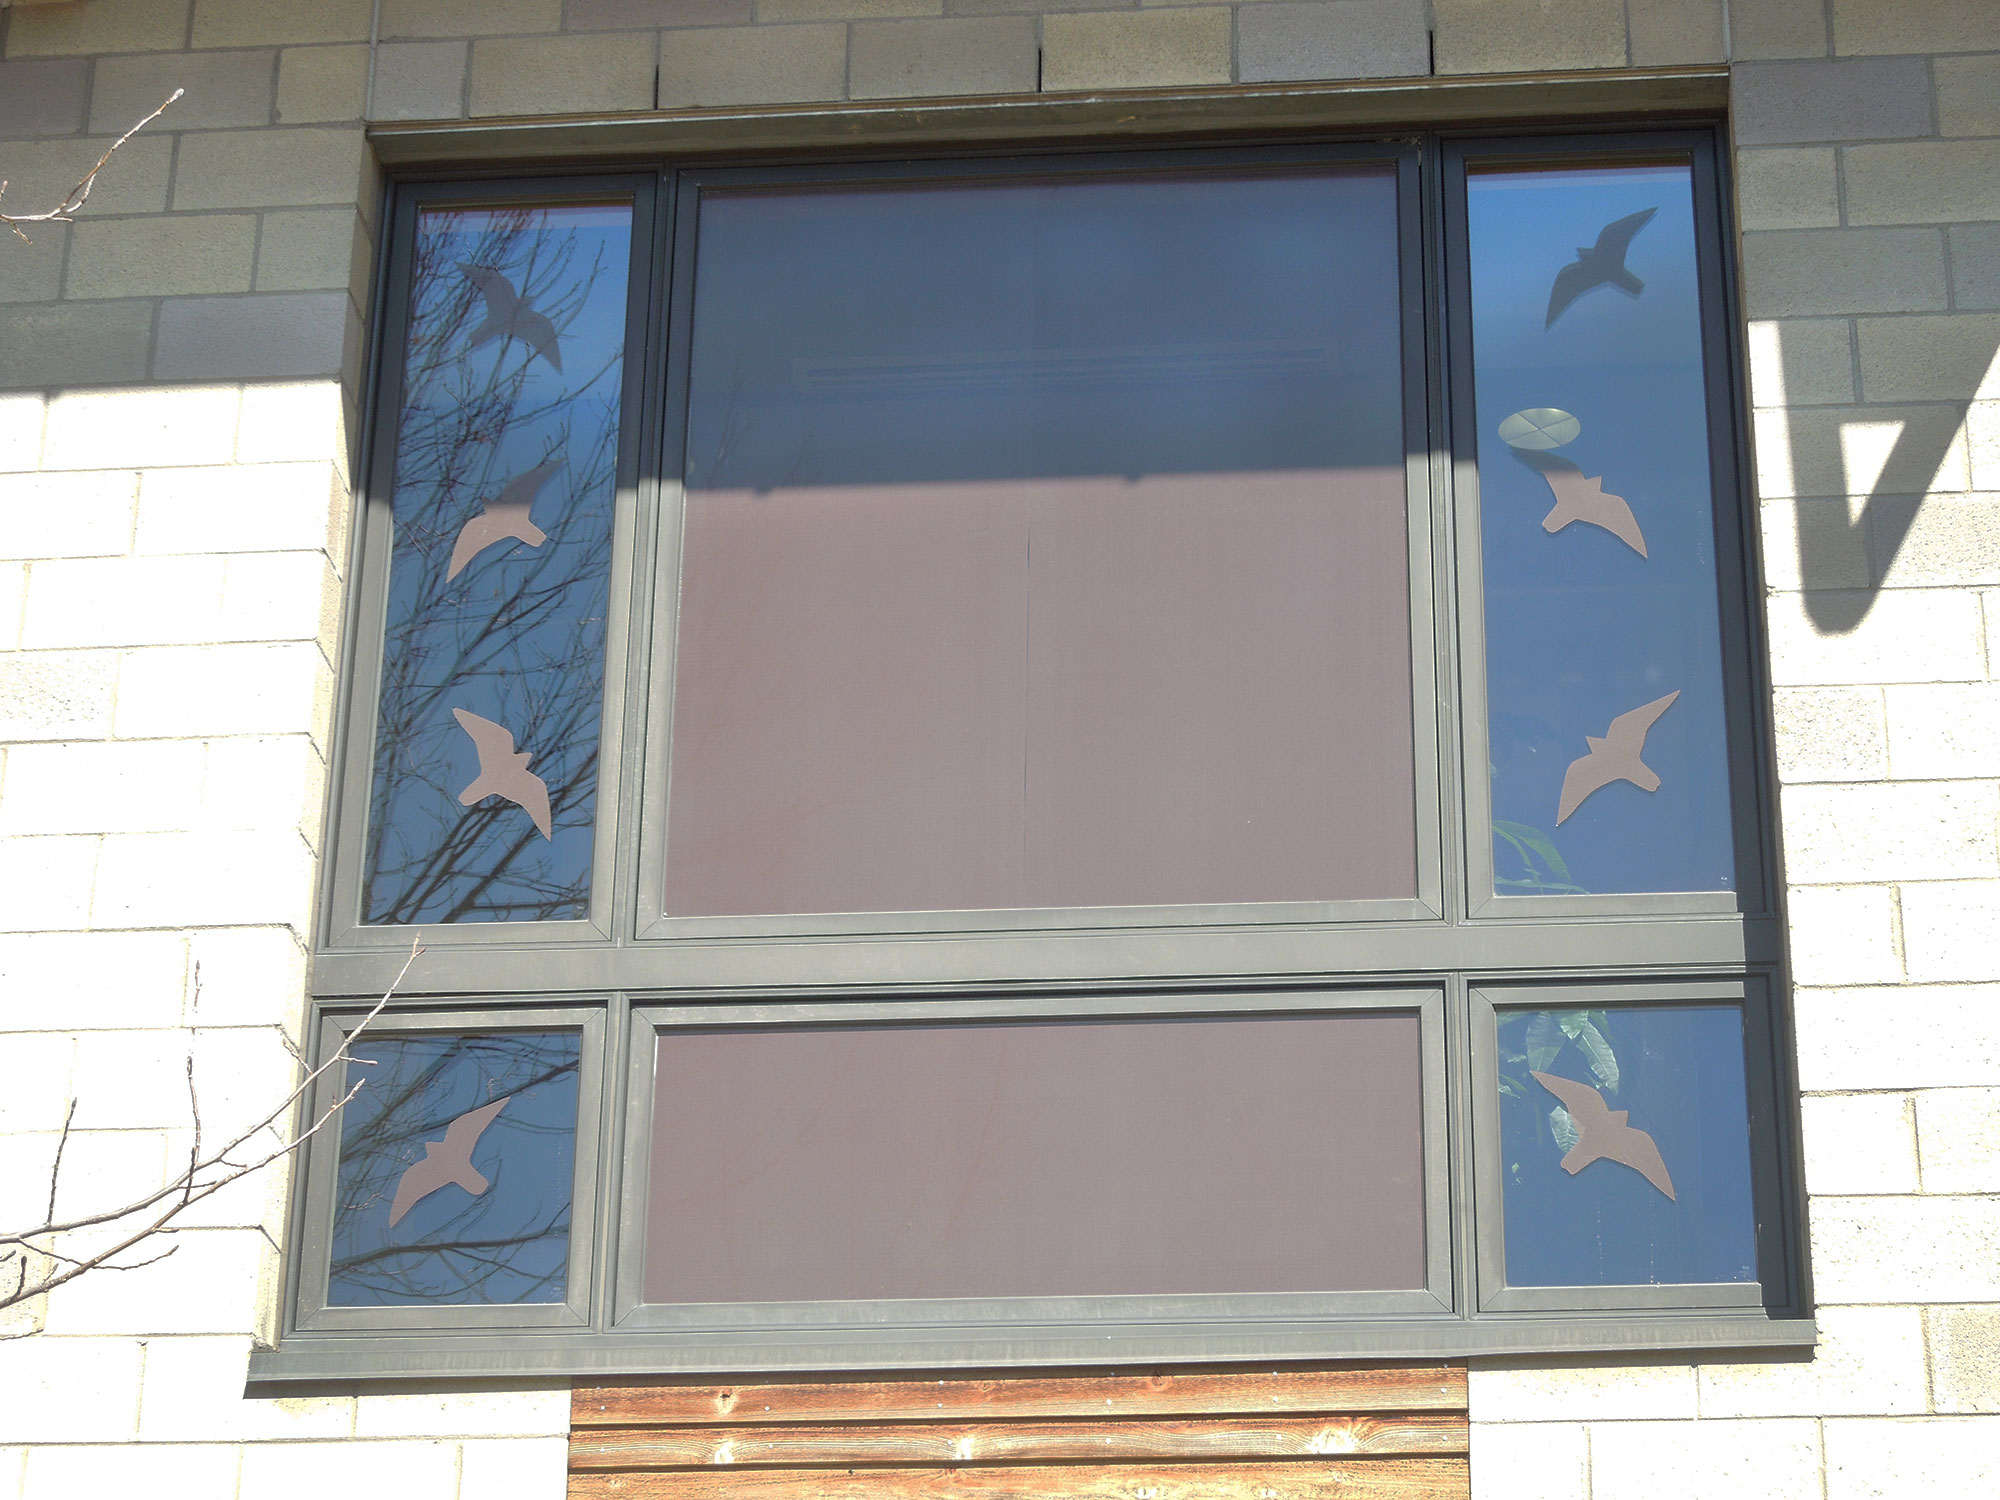 Companies and homeowners can also build bird friendly buildings by incorporating reduced visibility of glass incorporating designs in on glass and